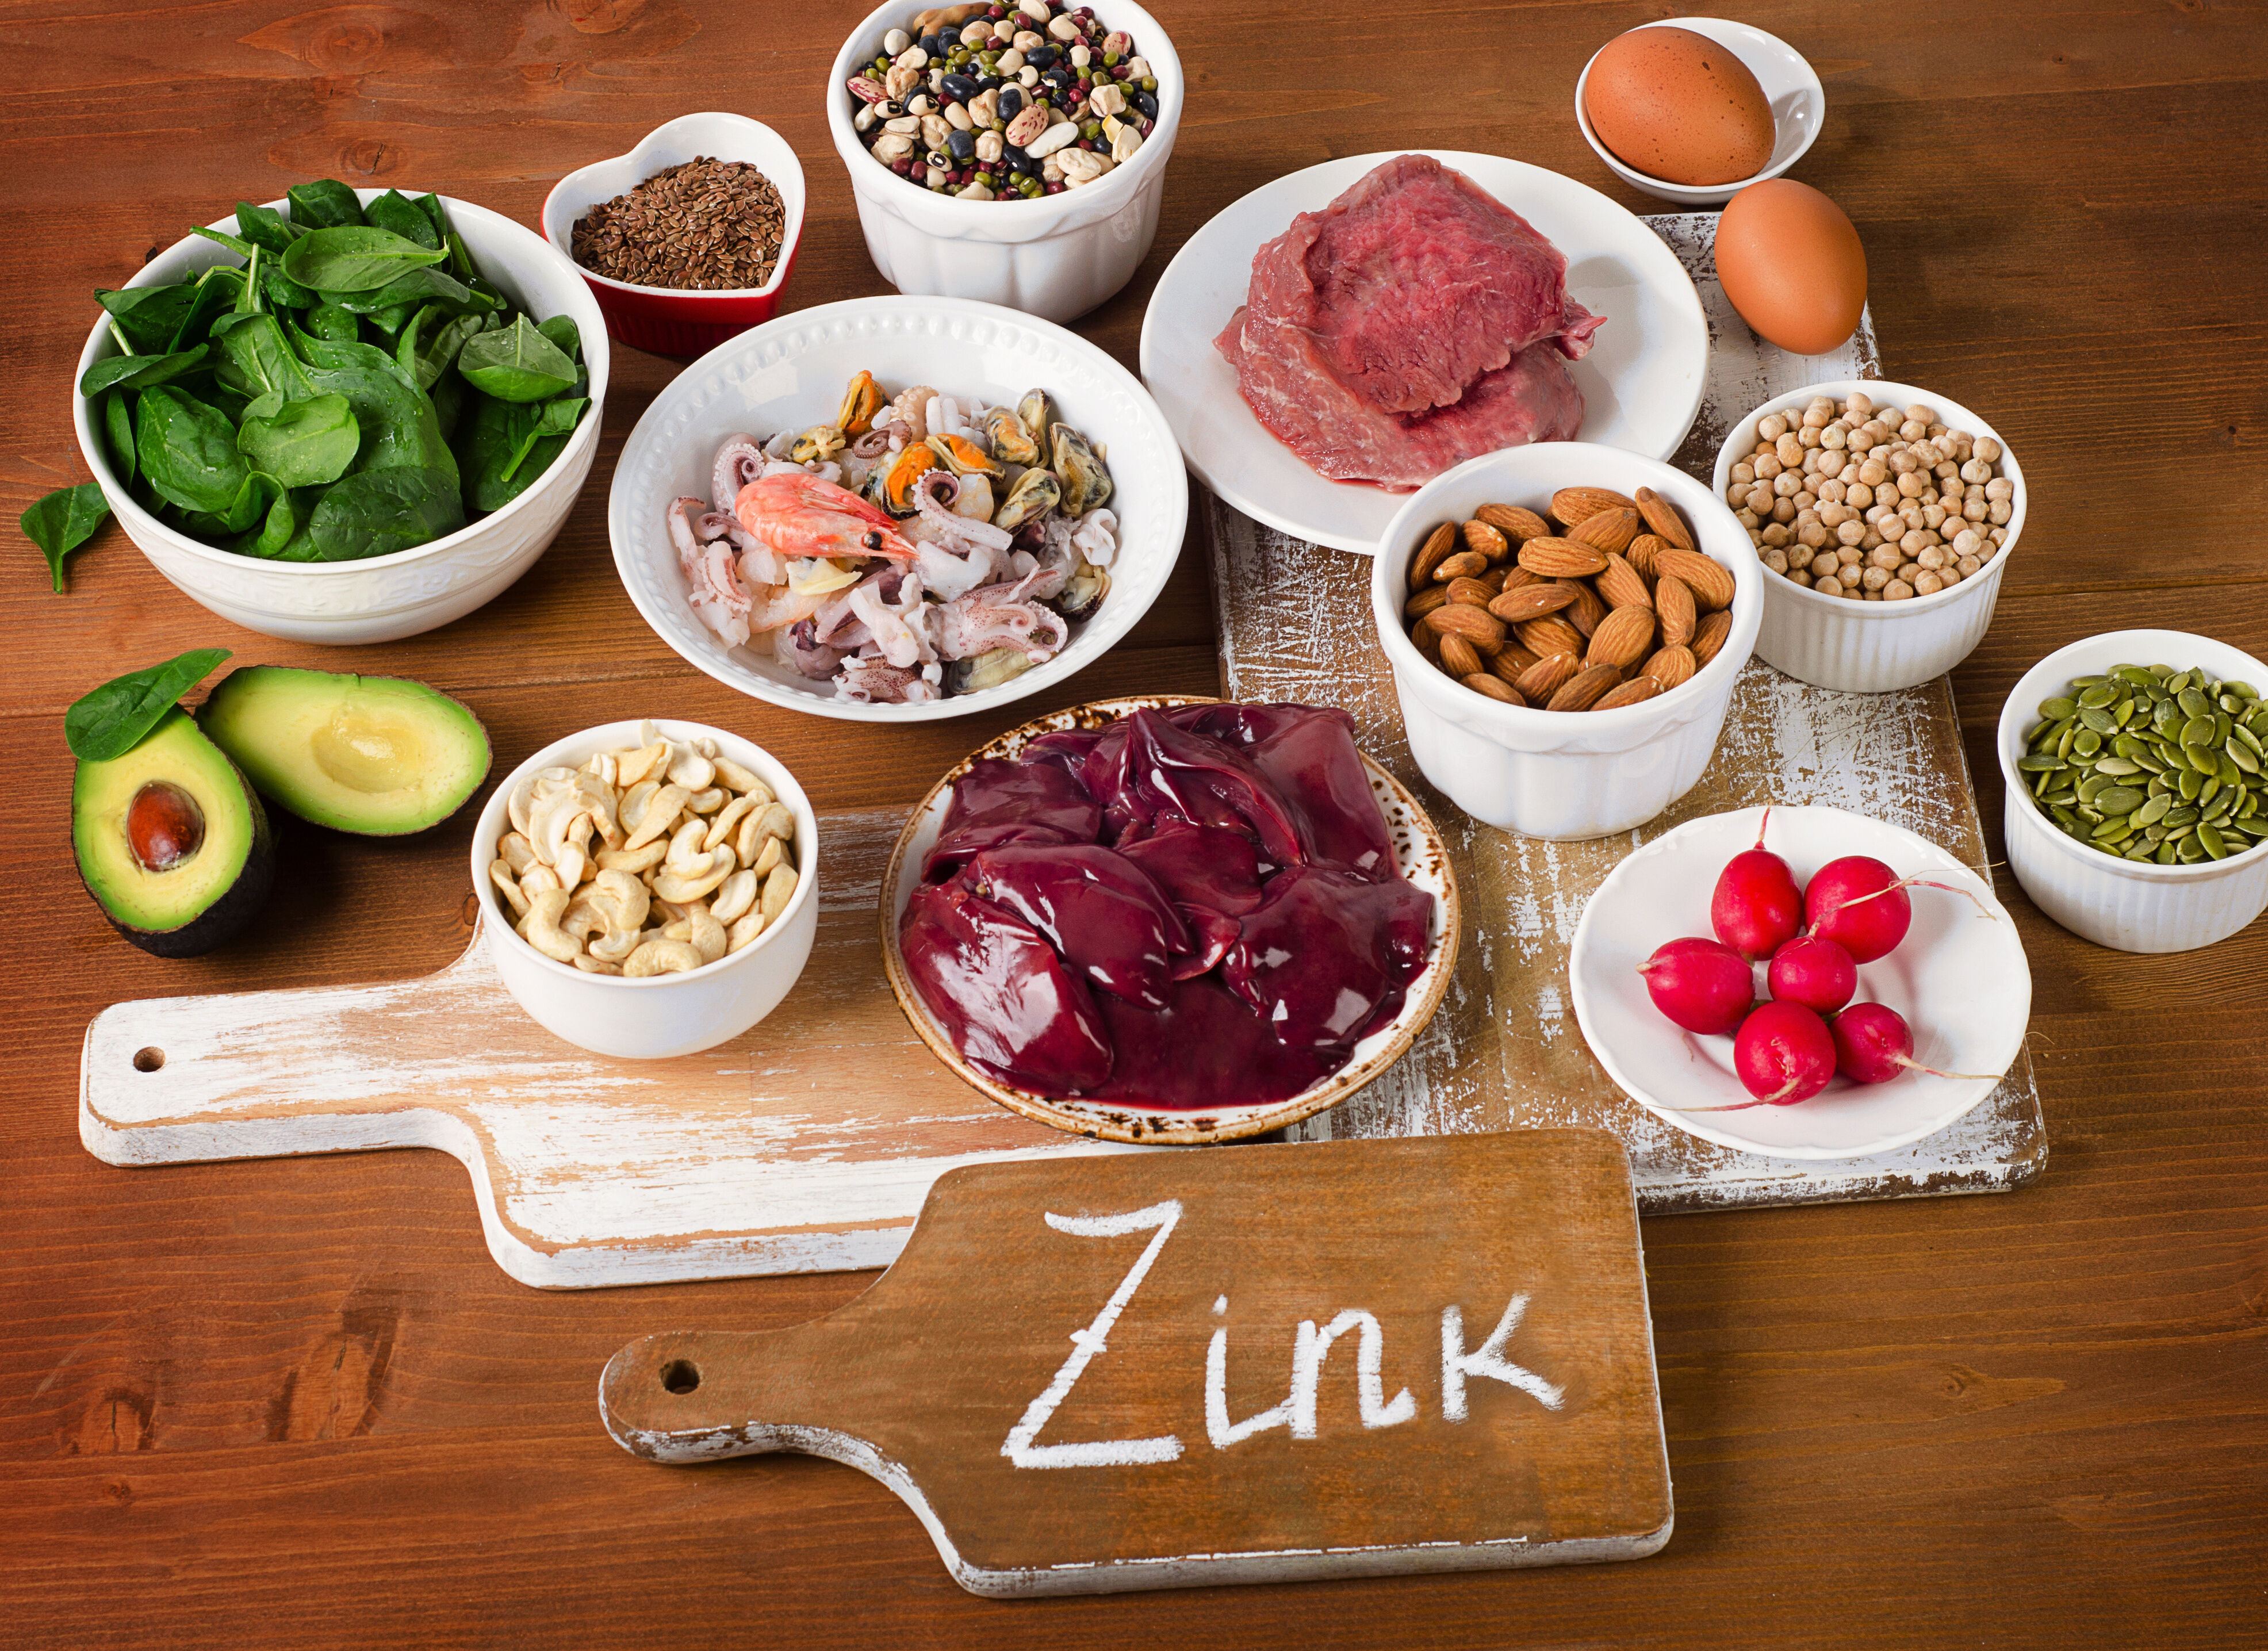 Zinc is a critical trace mineral